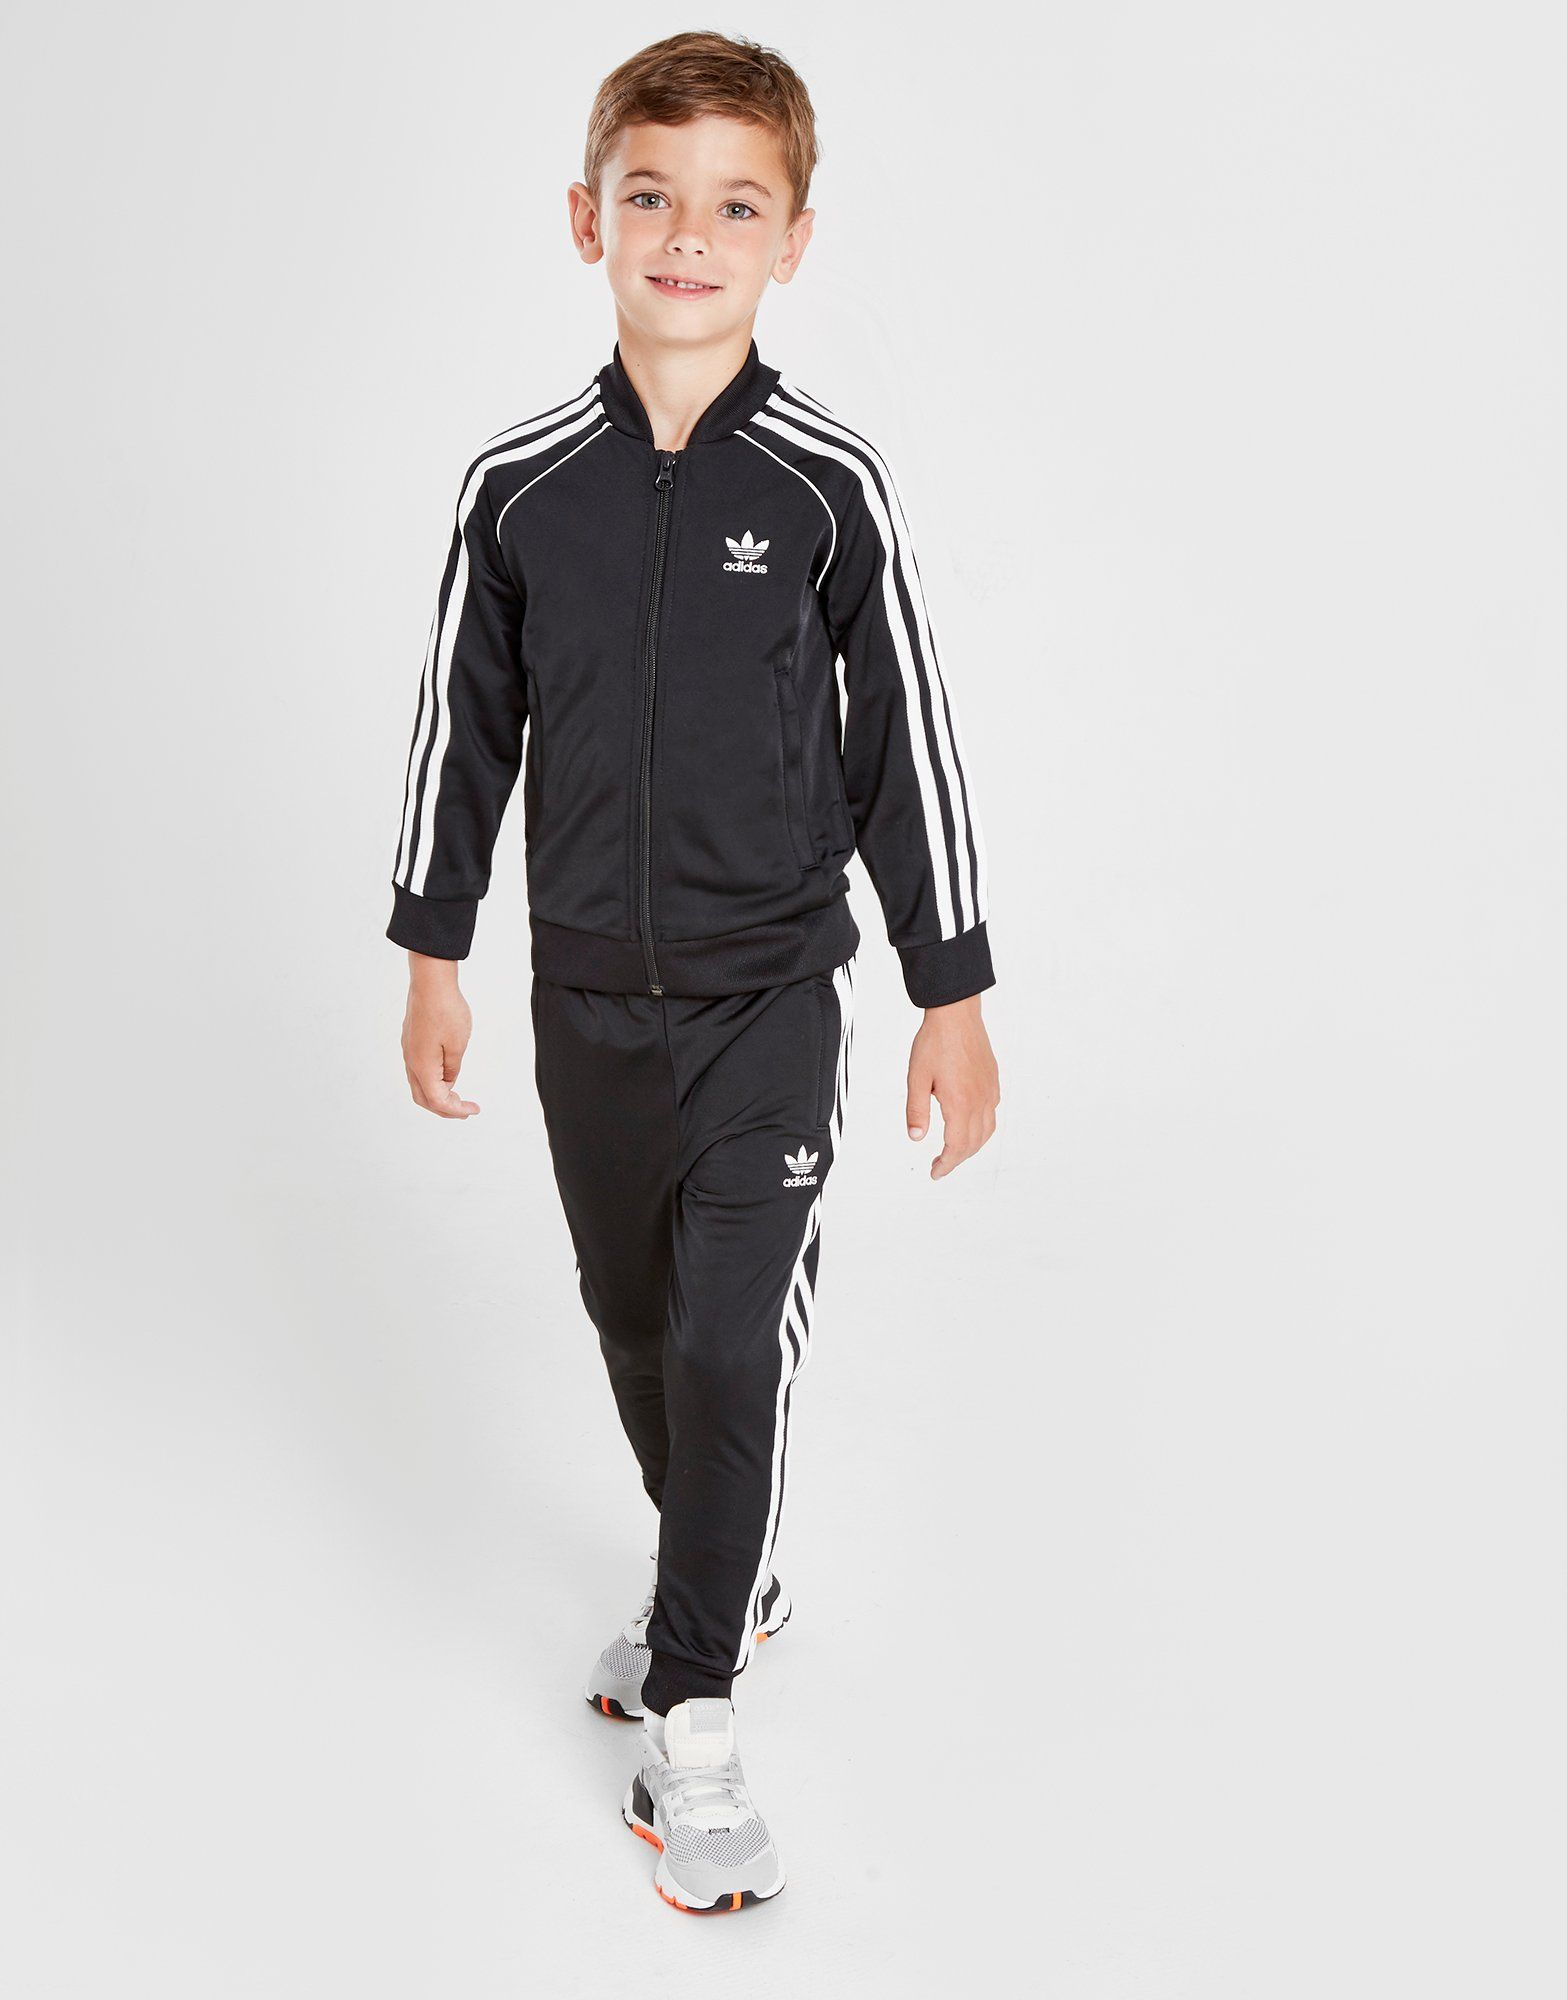 new release clearance sale newest collection adidas Originals Superstar Tracksuit Children | JD Sports Ireland